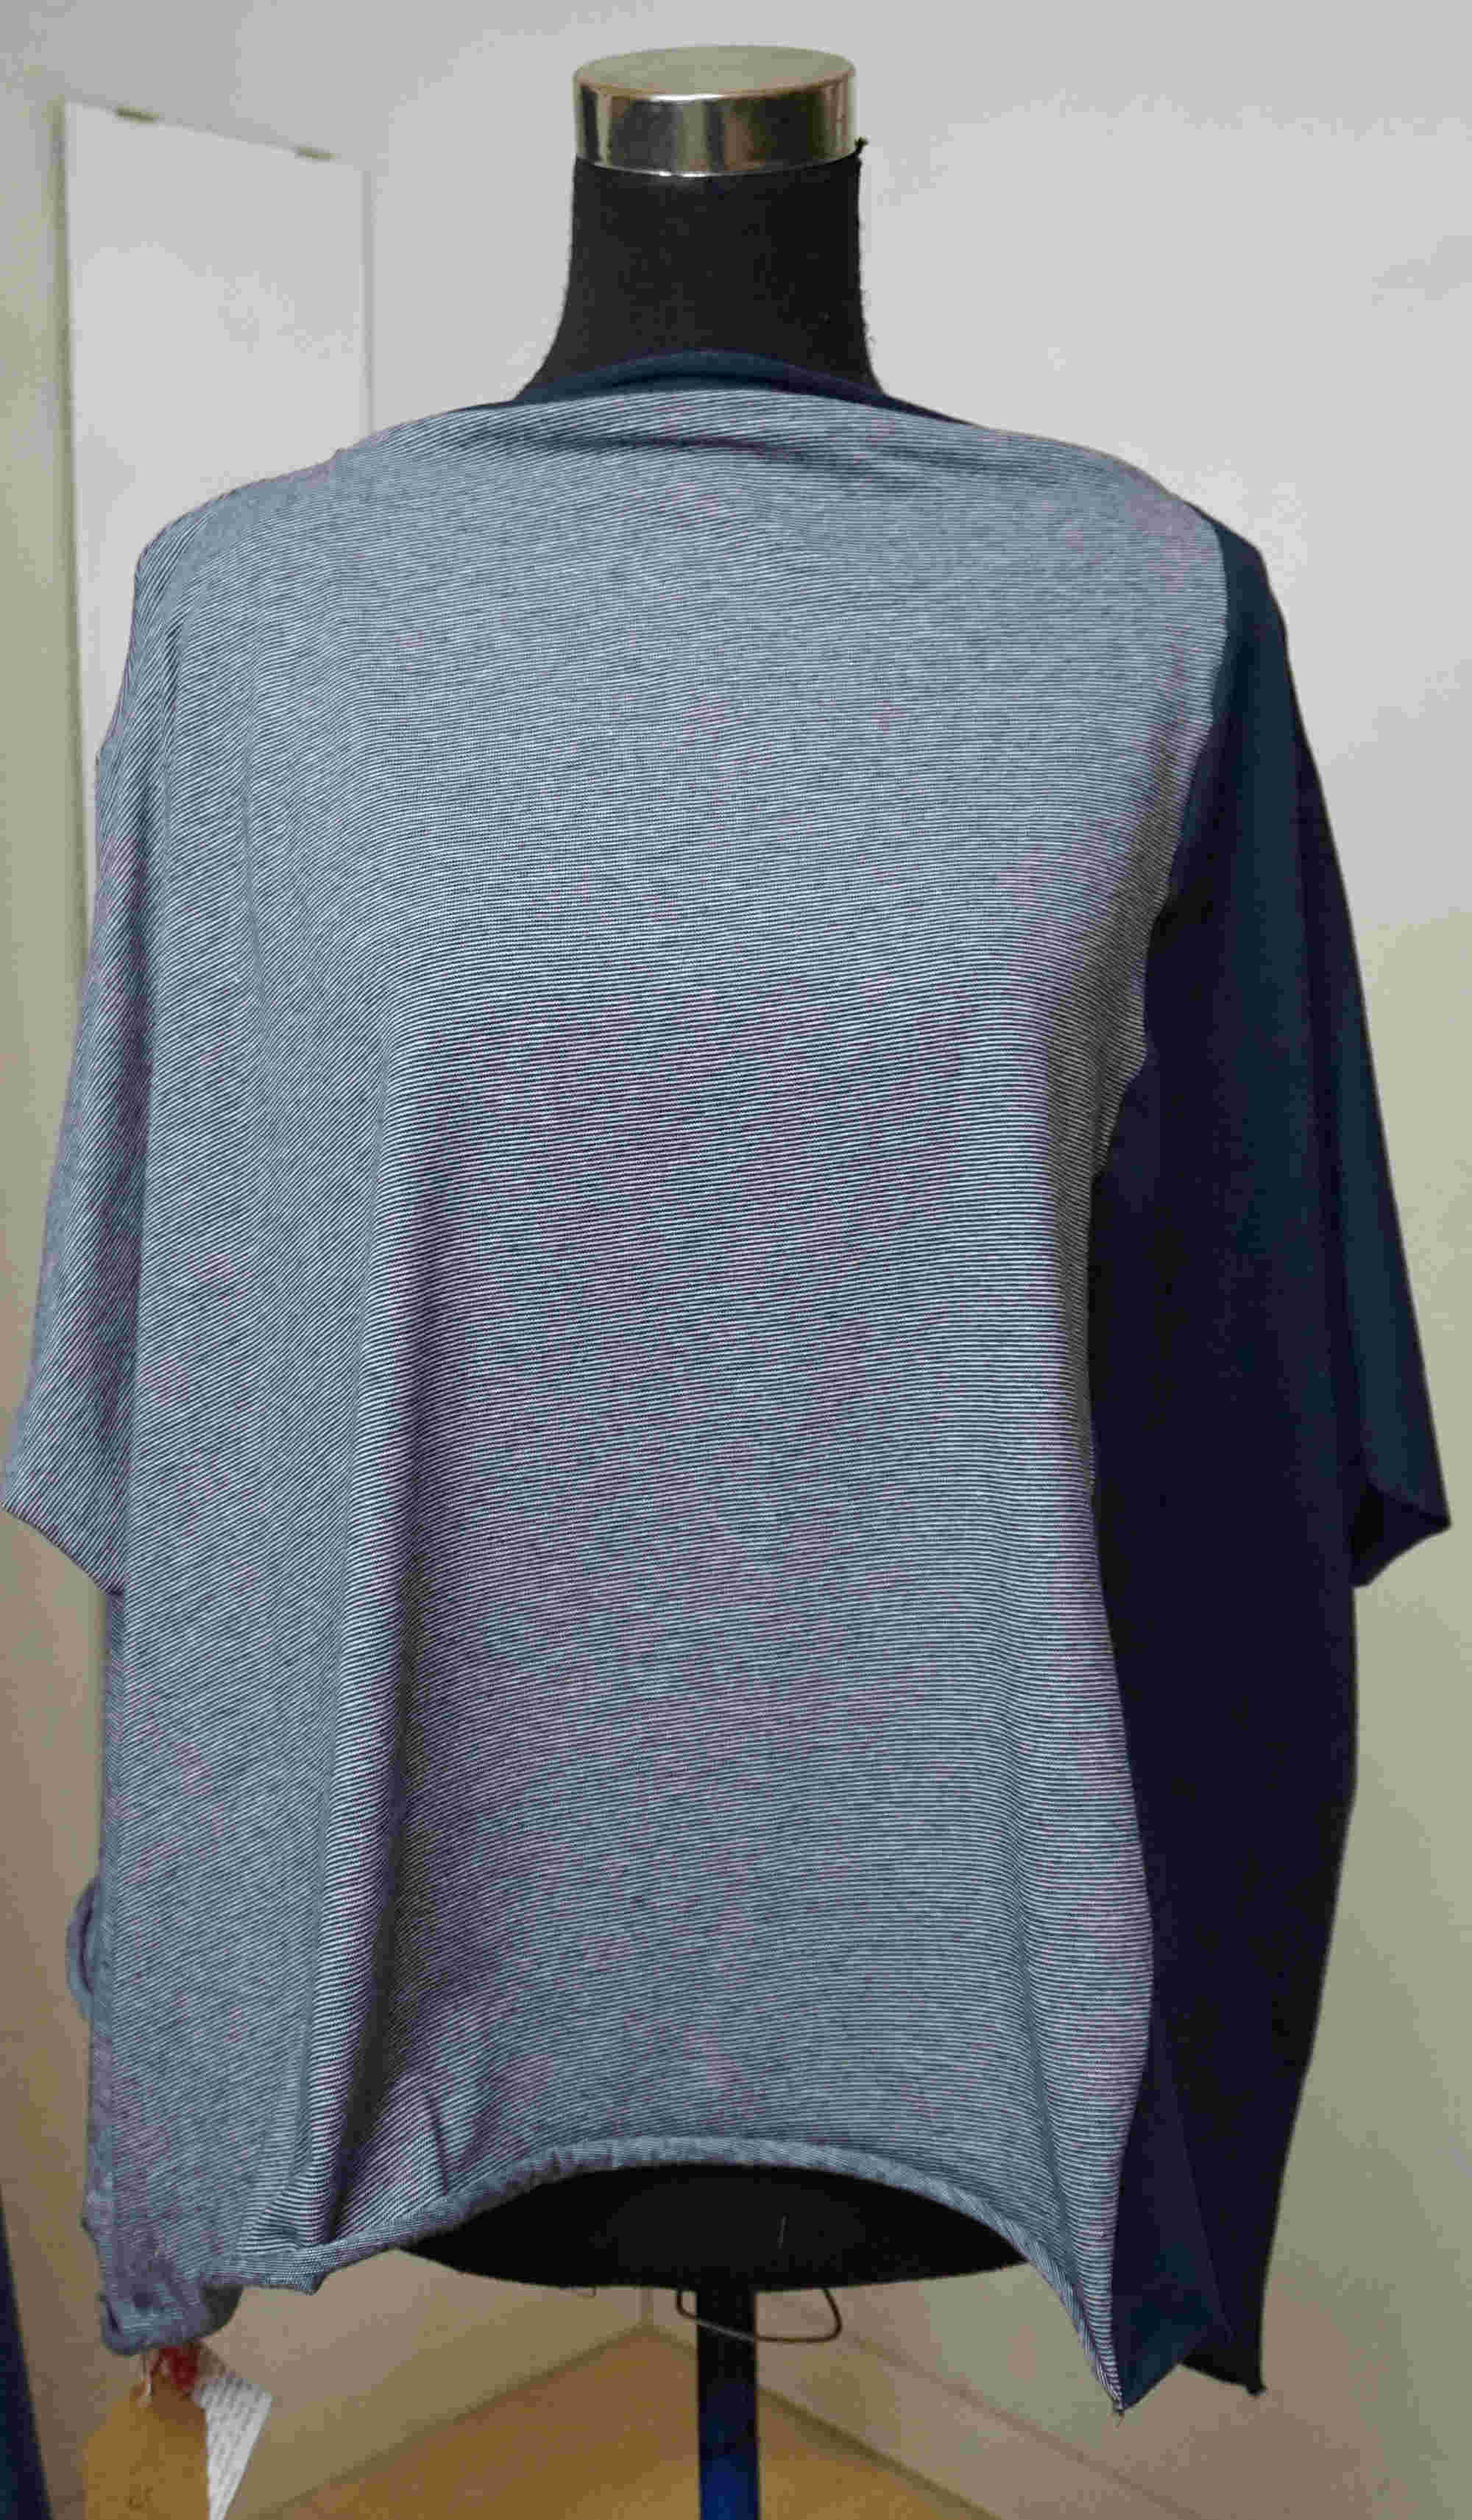 Square sweater with inserts